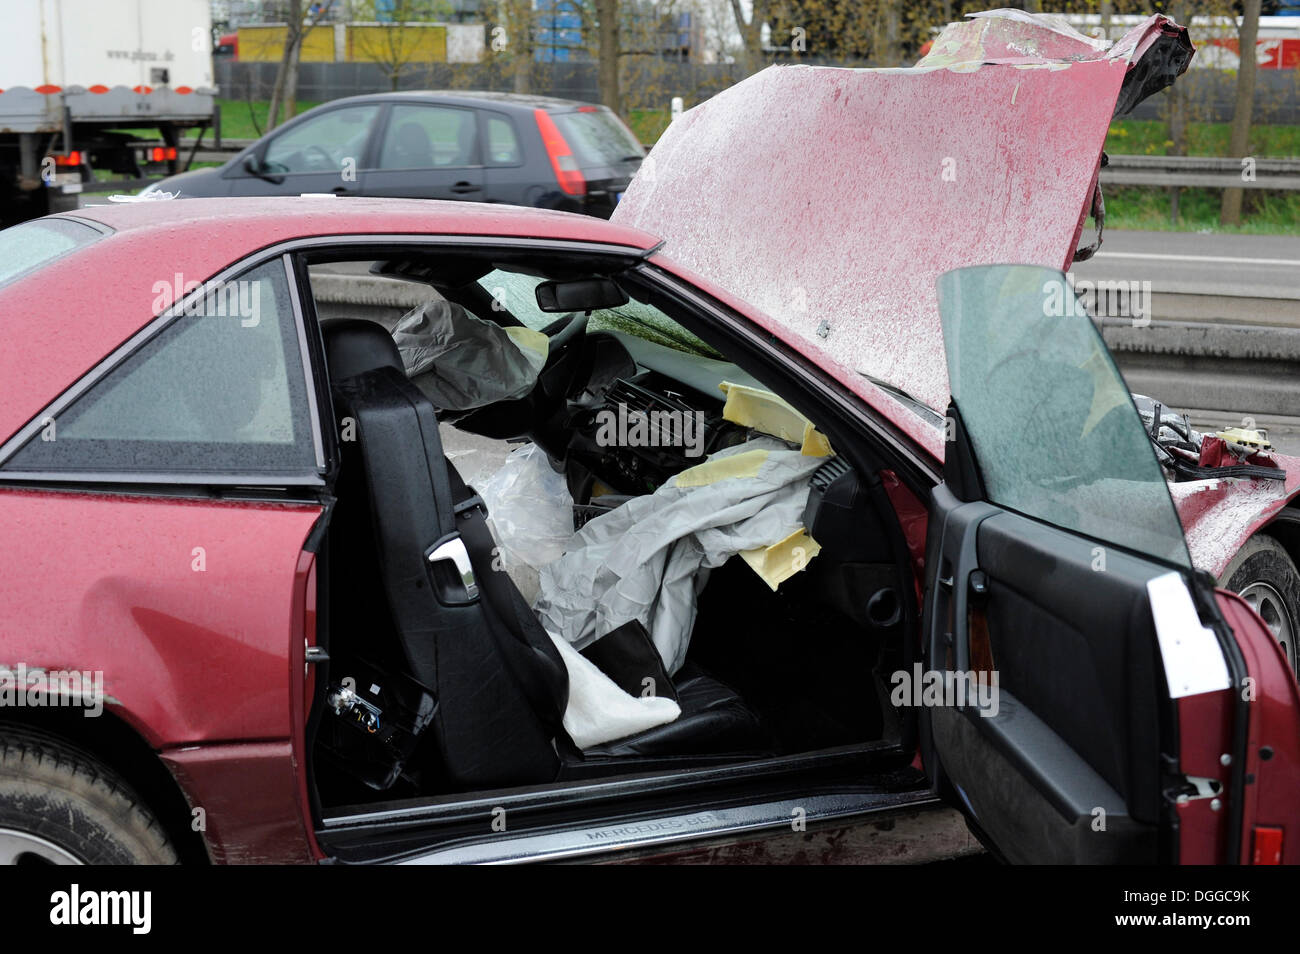 Road Traffic Accident Stock Photos & Road Traffic Accident Stock ...